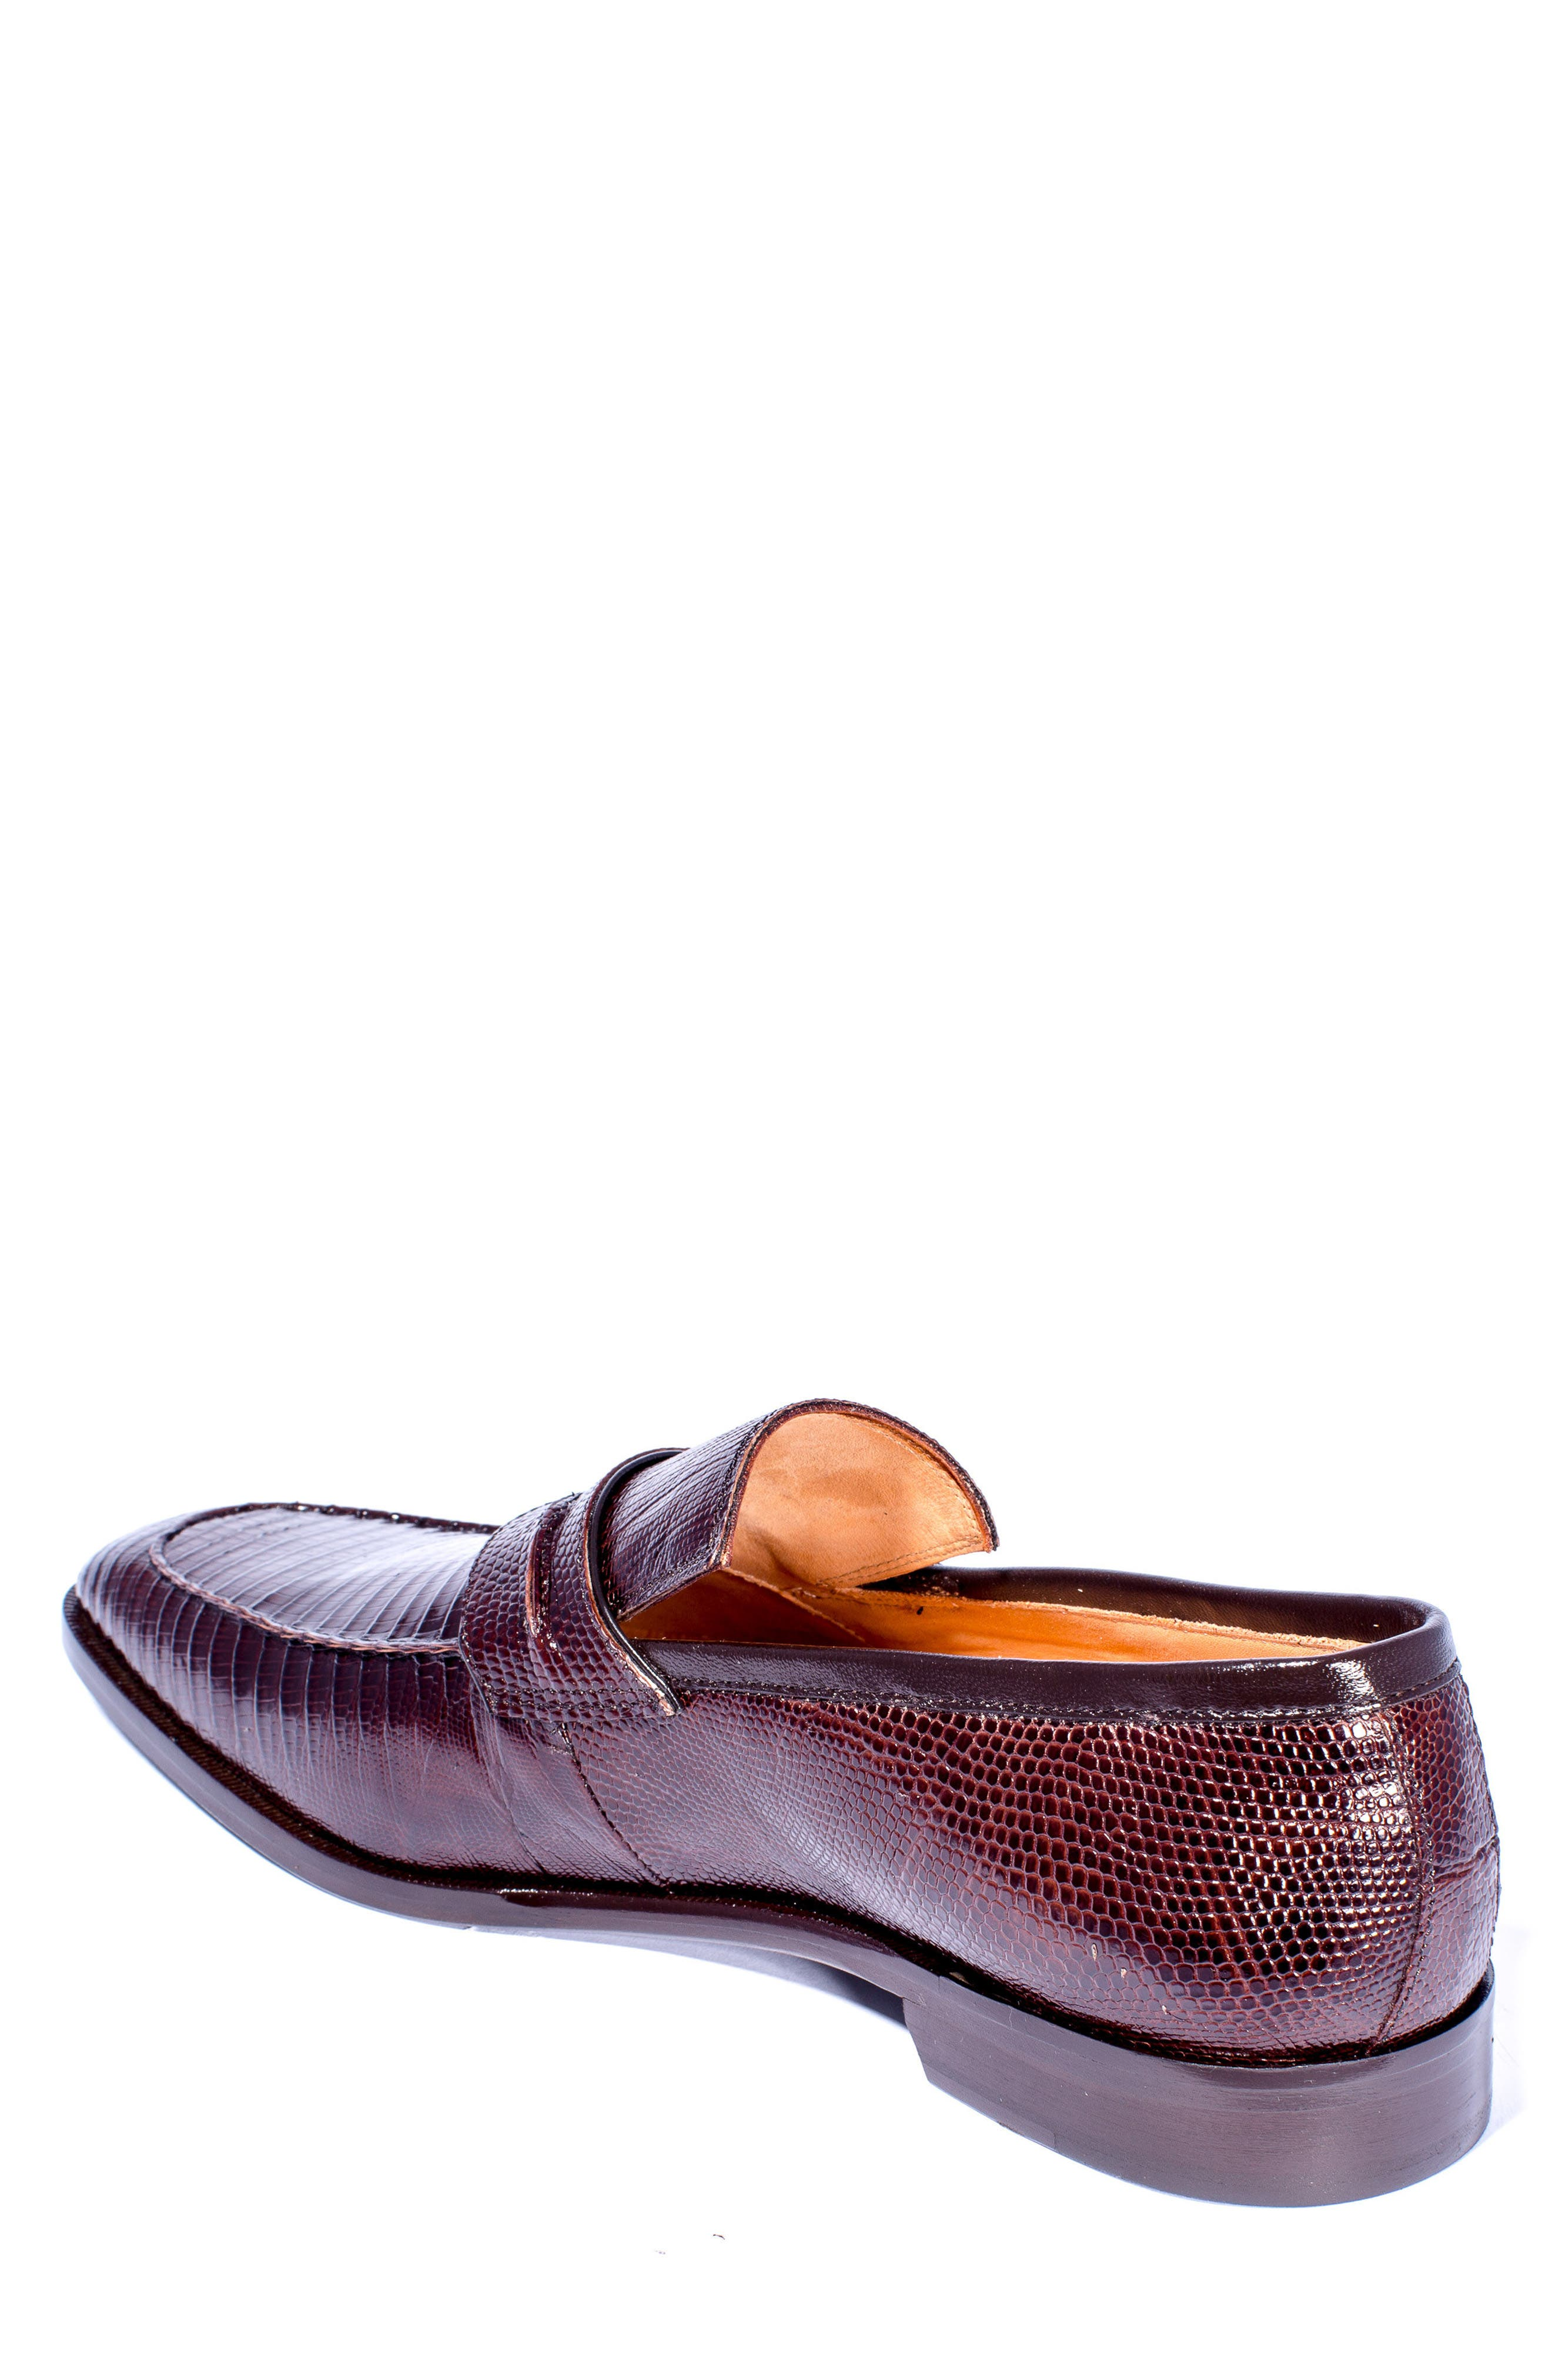 Meo Penny Loafer,                             Alternate thumbnail 2, color,                             201